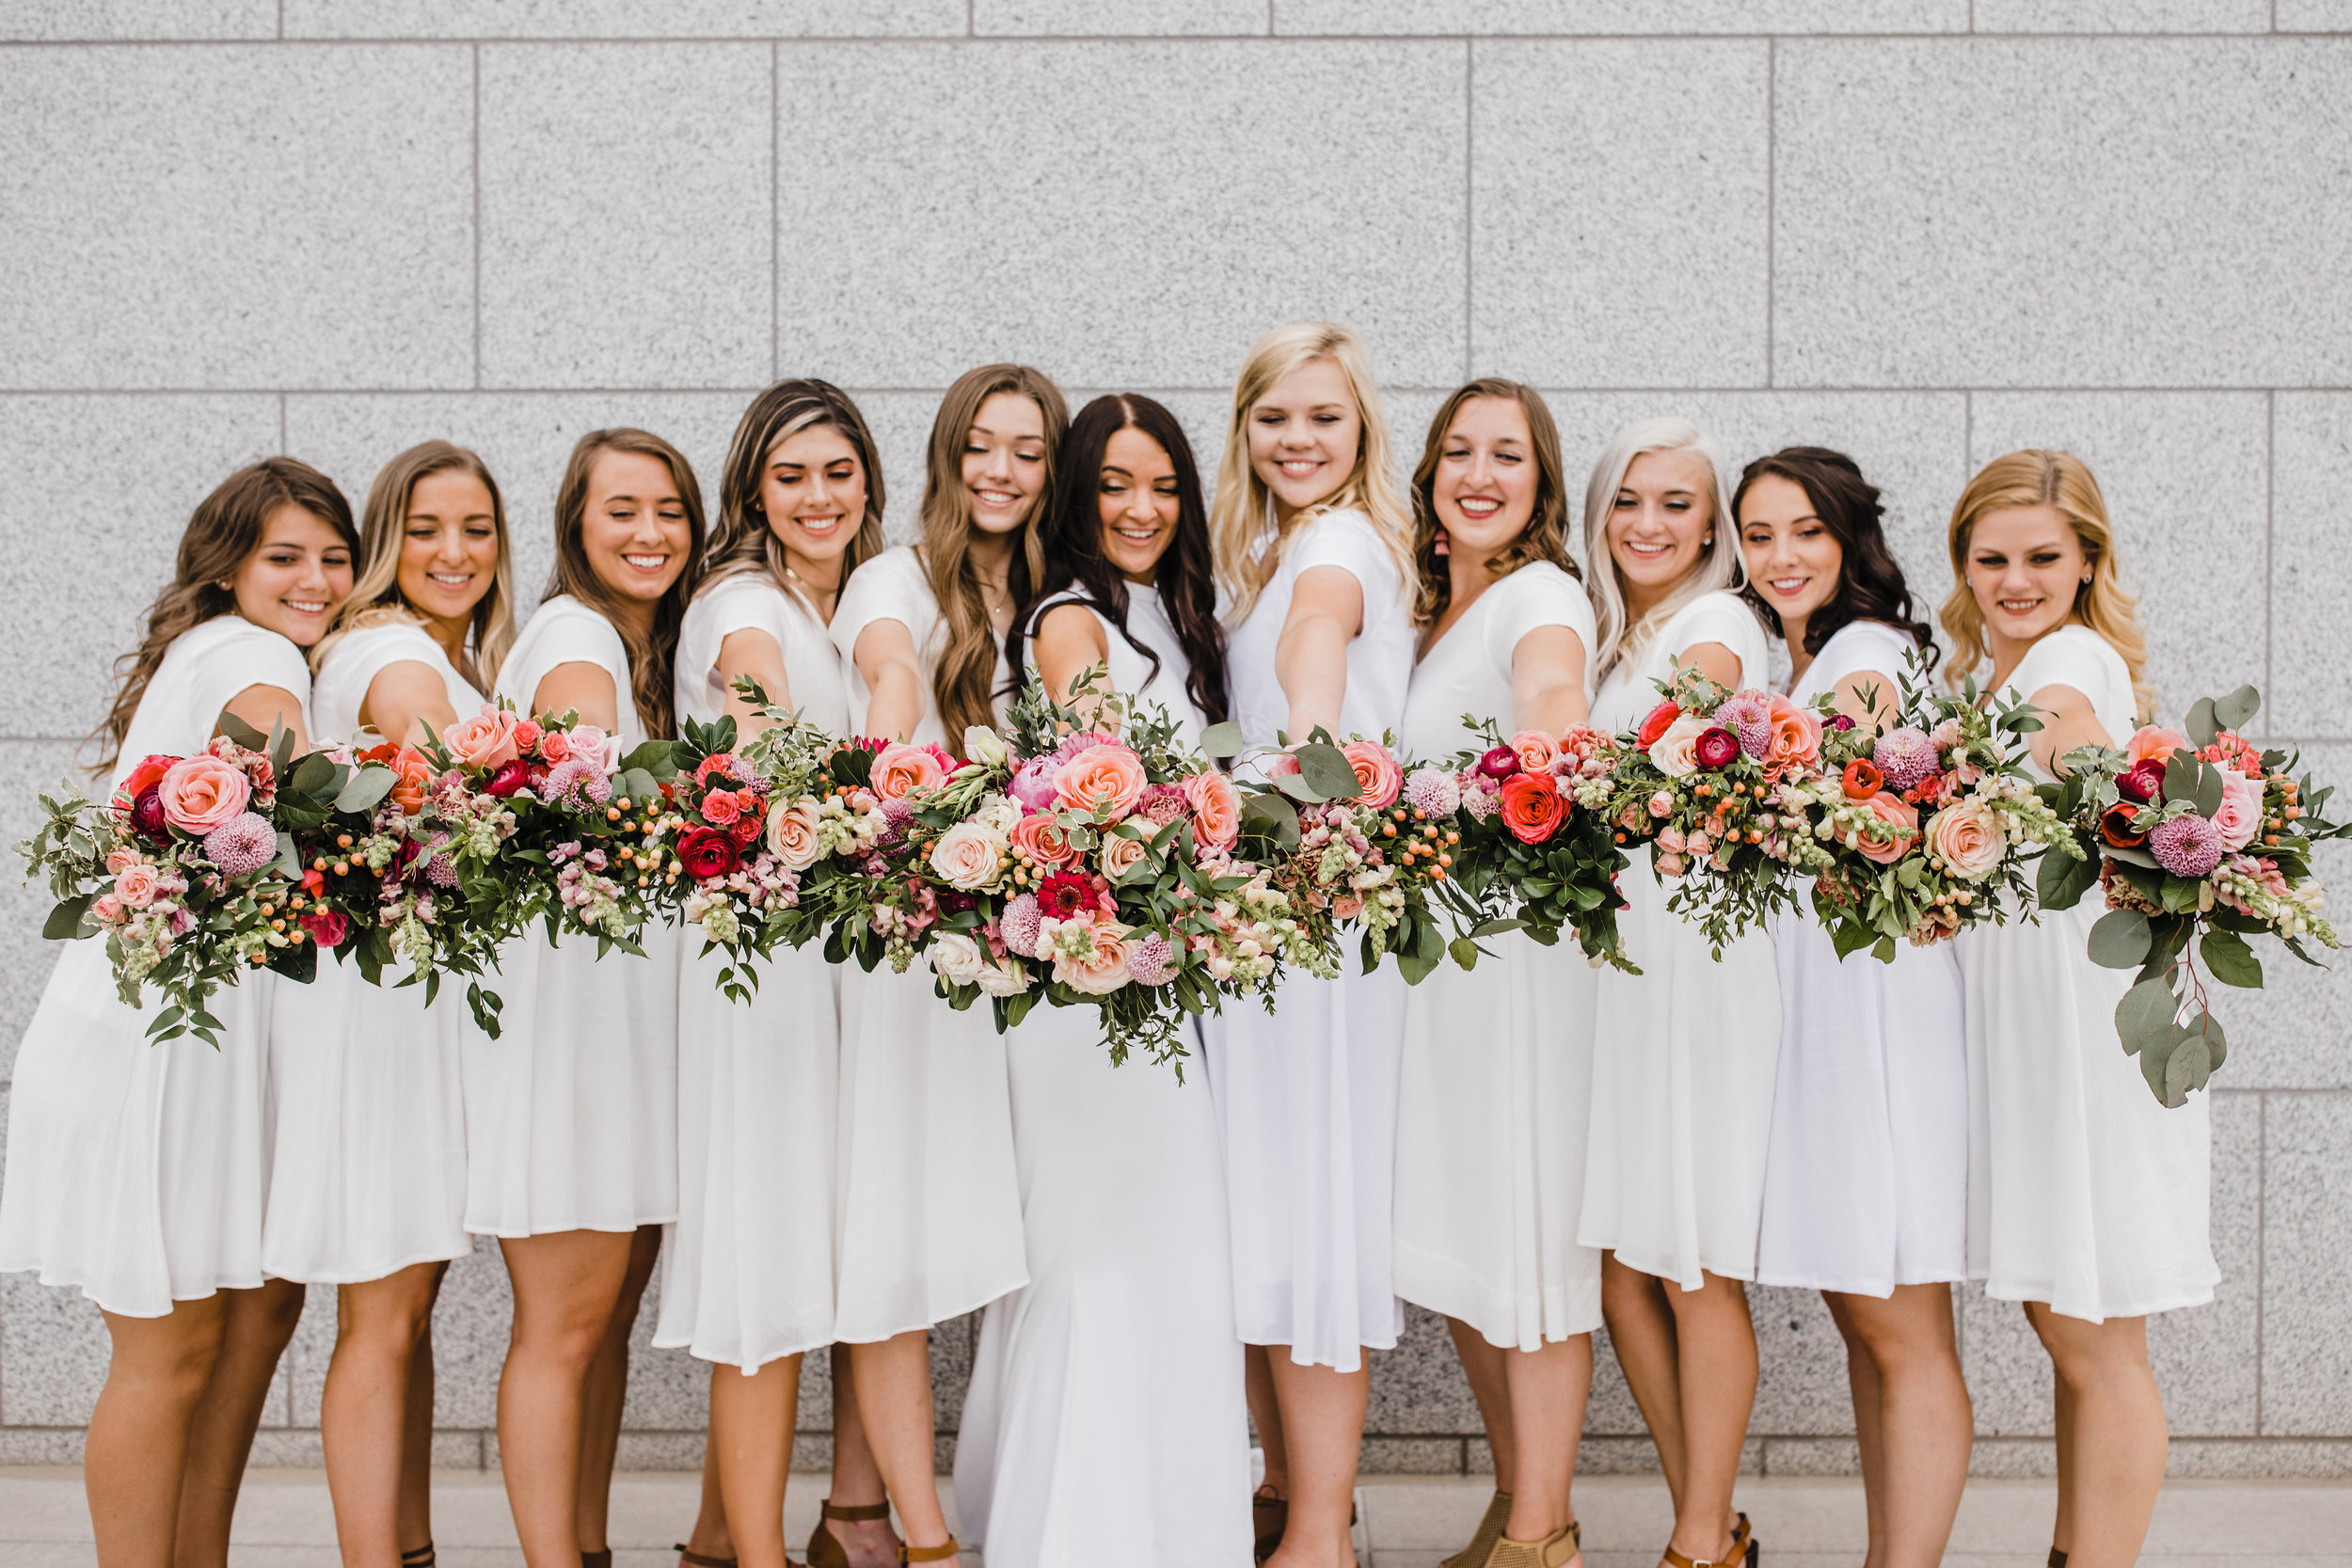 best photographer in utah valley utah white bridesmaids dresses pink botanical bouquets